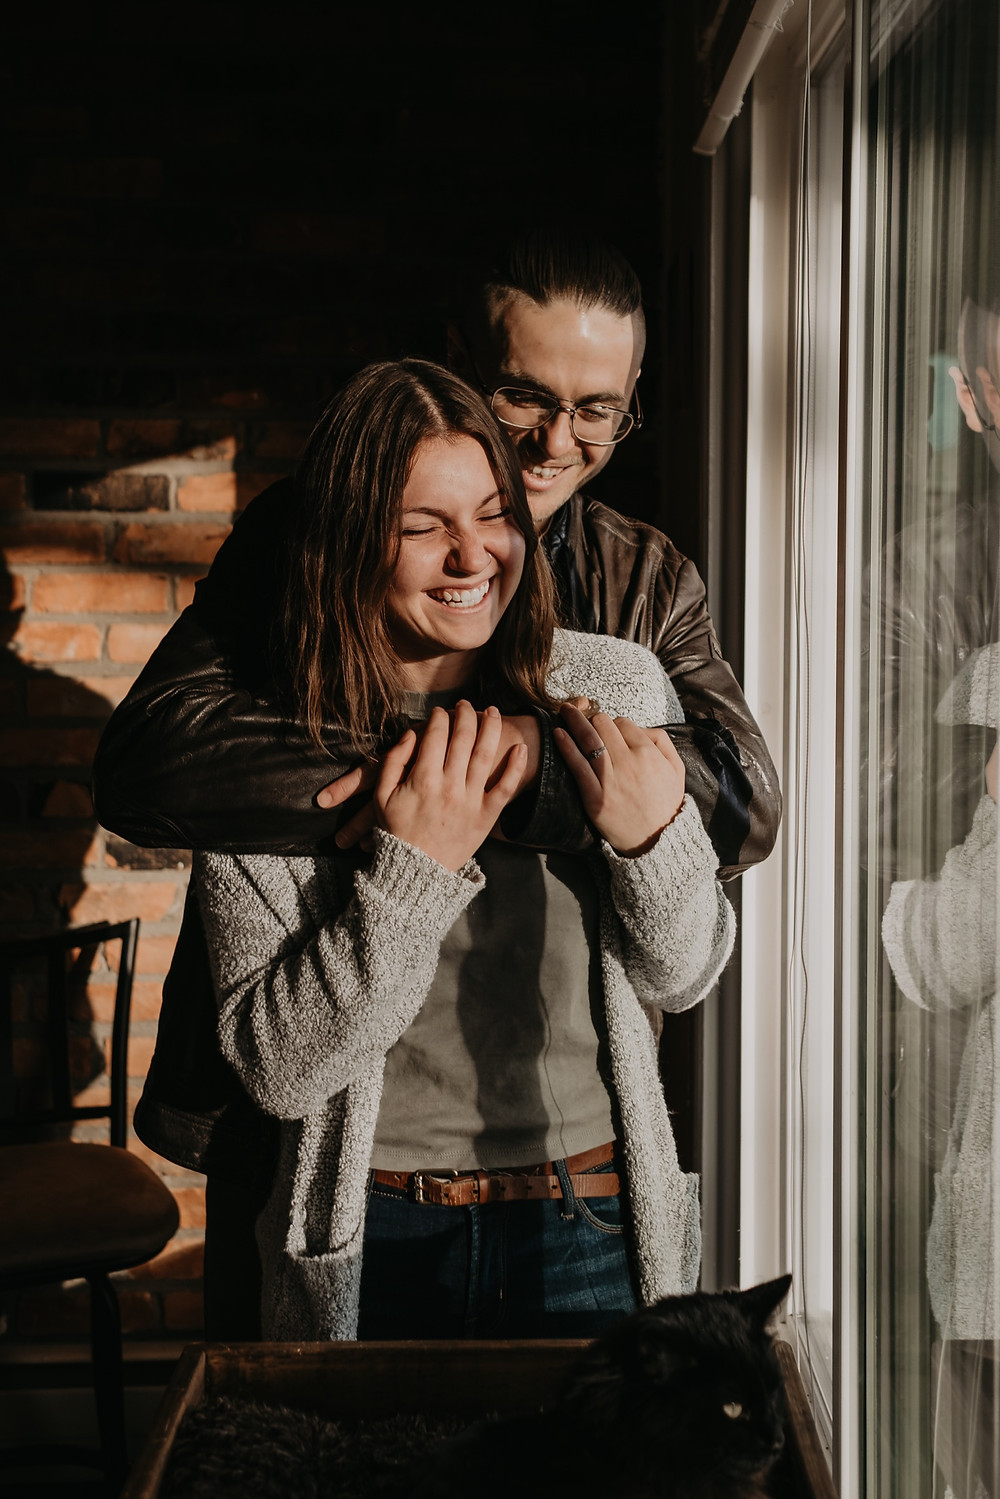 Couple laughing during engagement photos. Photographed by Nicole Leanne Photography.